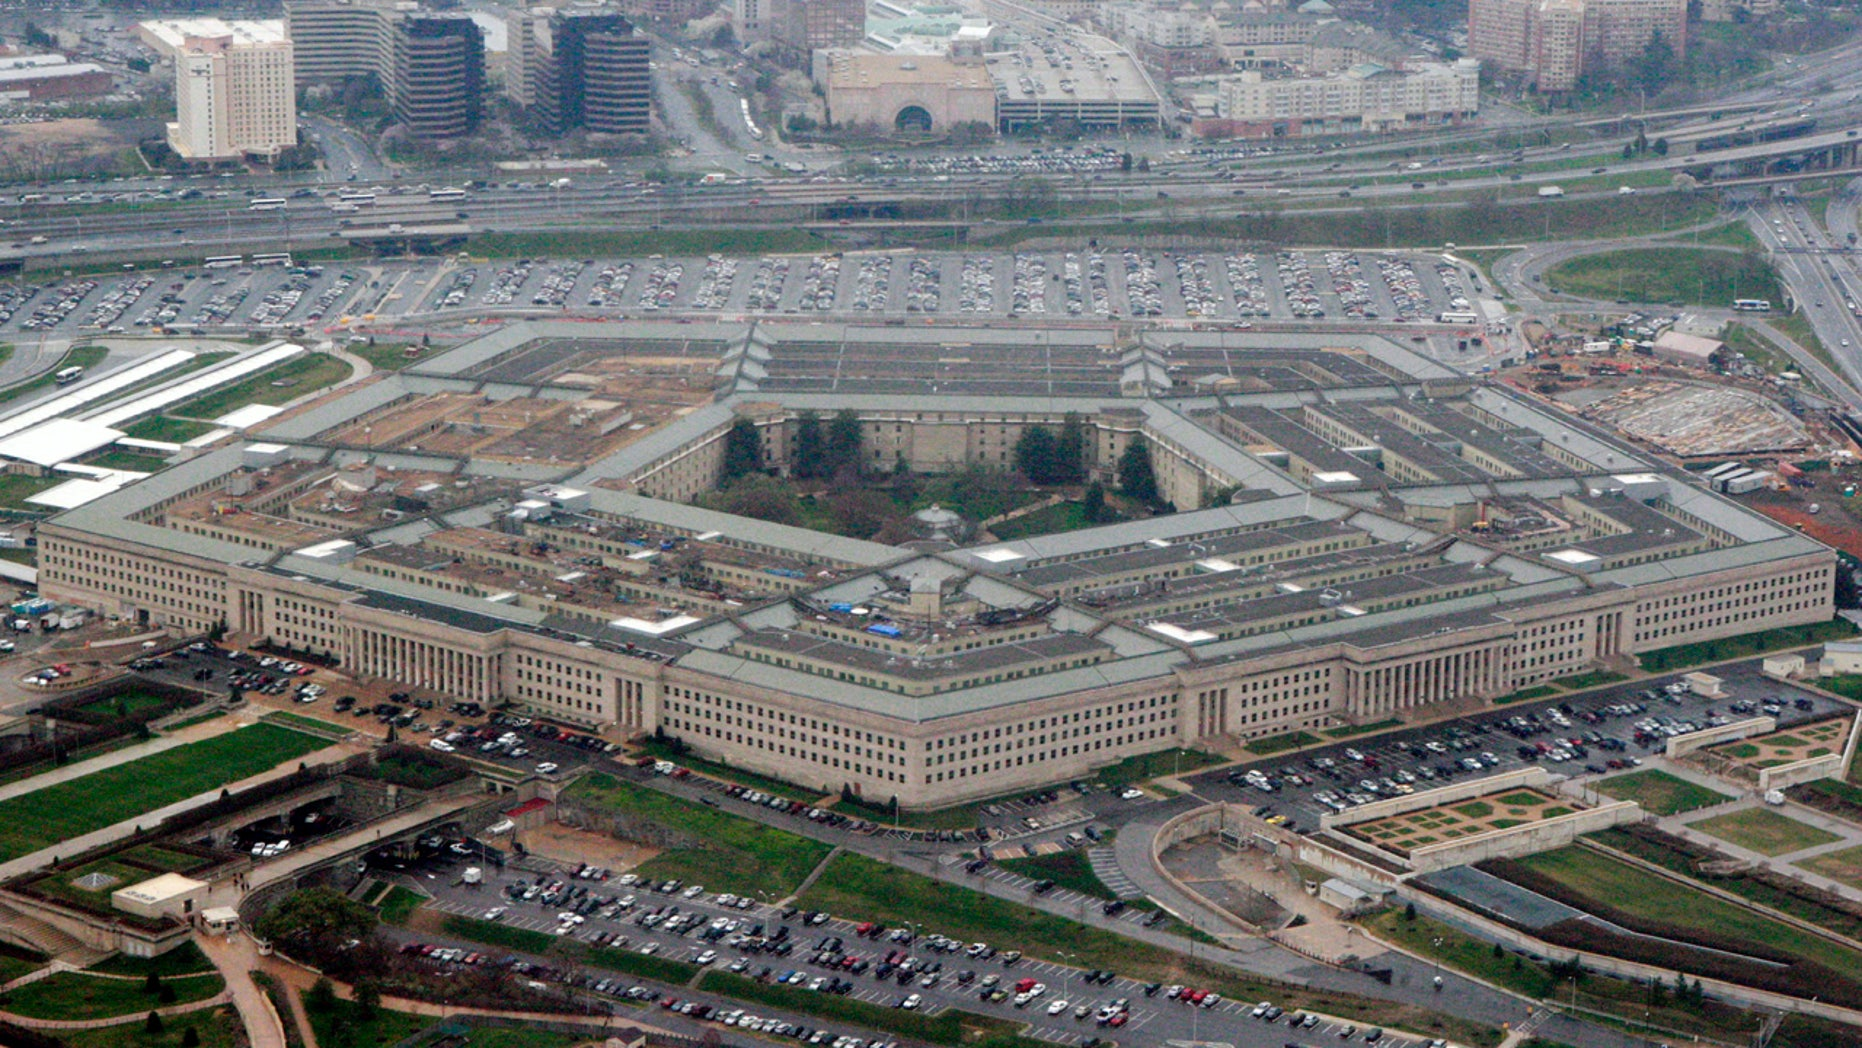 The U.S. Department of Defense is seen above.